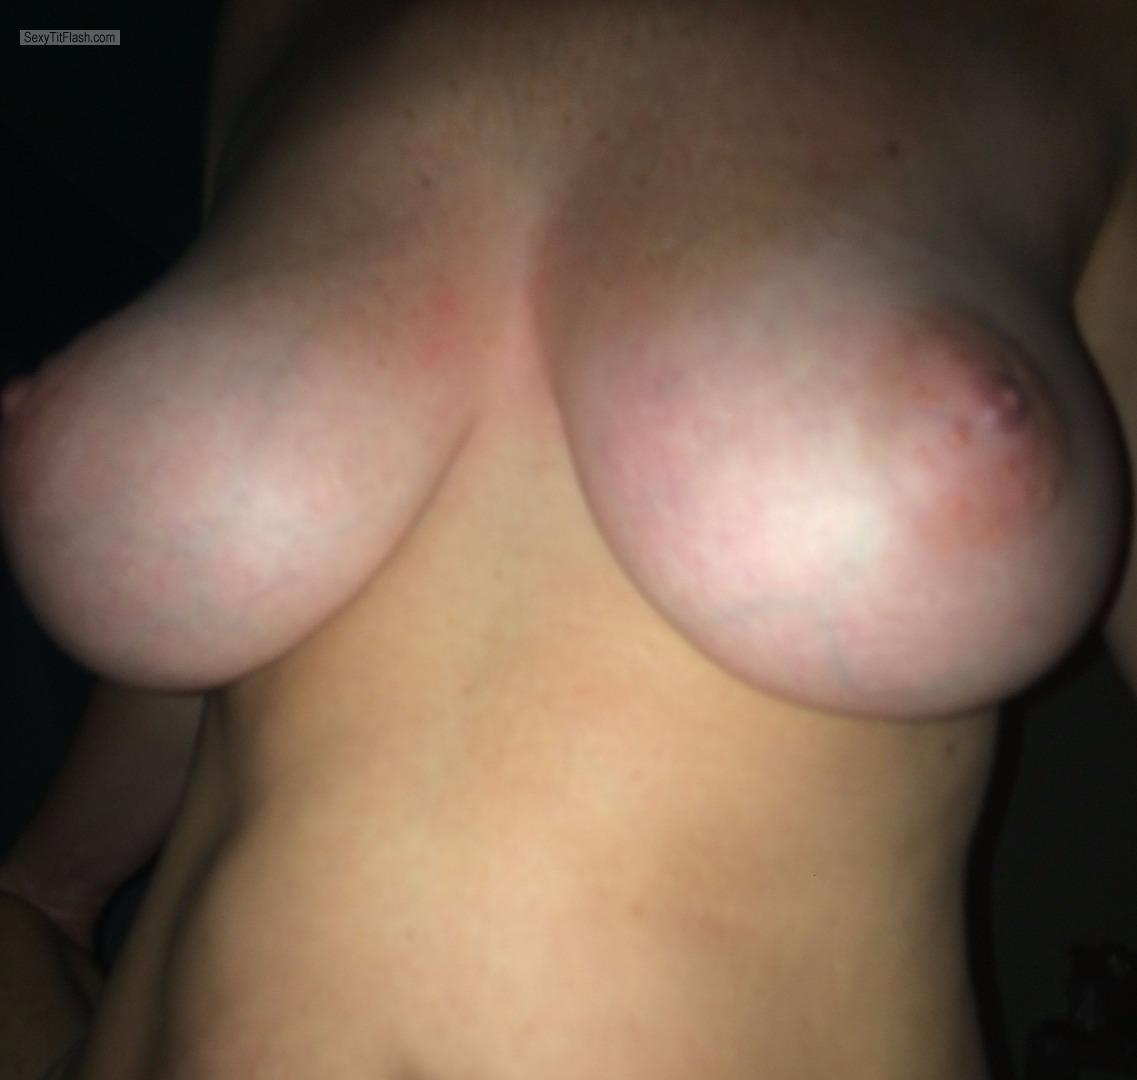 Tit Flash: Wife's Tanlined Very Big Tits - Hot Wife 34DD from United States